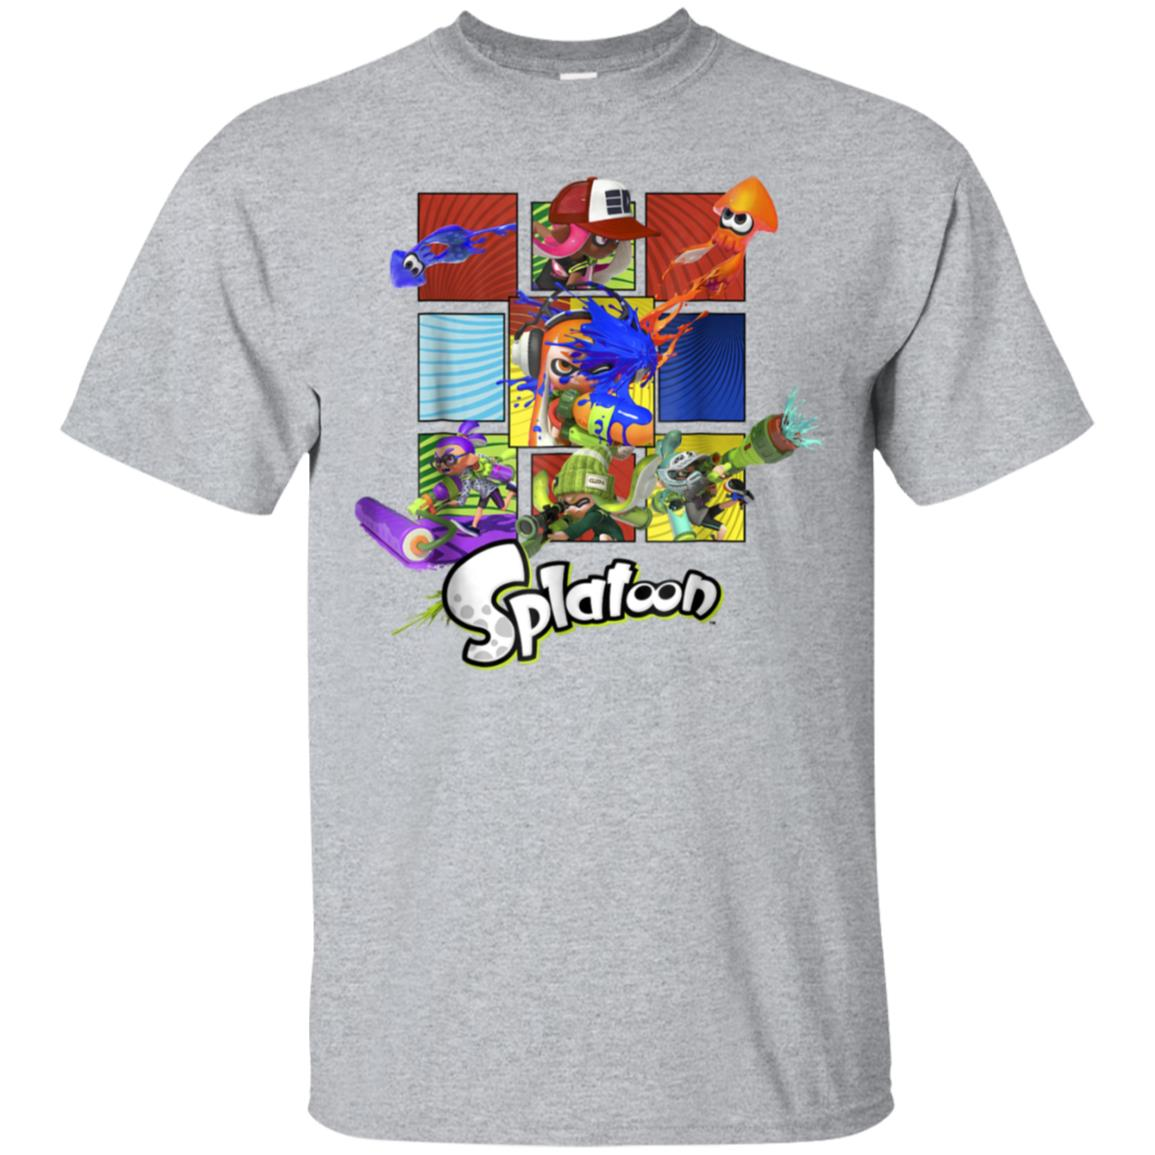 Nintendo Splatoon Inklings In Action Boxes Graphic T-Shirt 99promocode